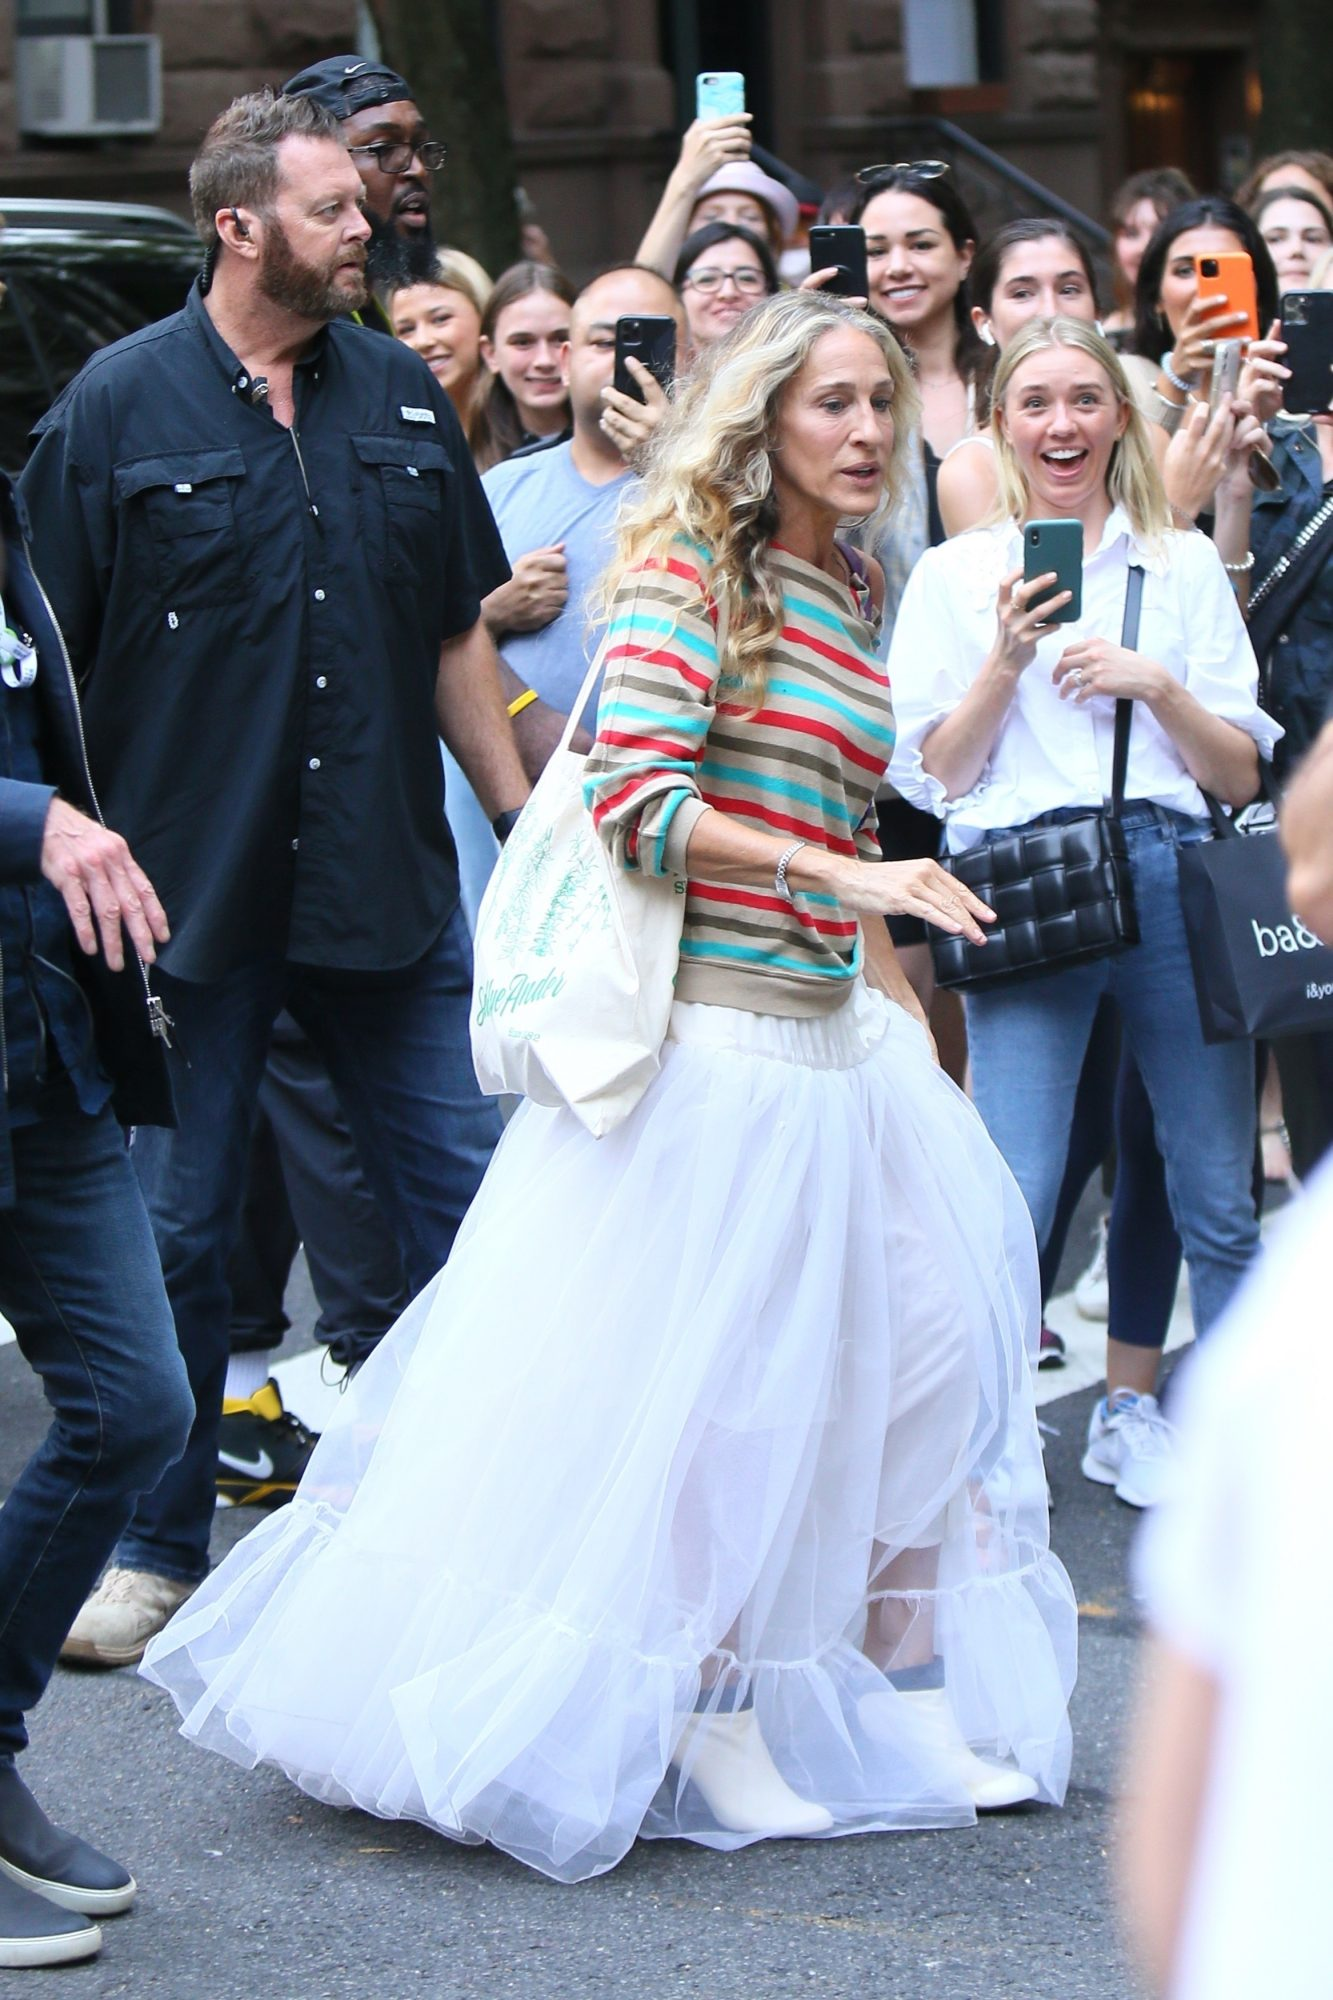 Sarah Jessica Parker Looks Great a White Gown as she Films 'And Just Like That'